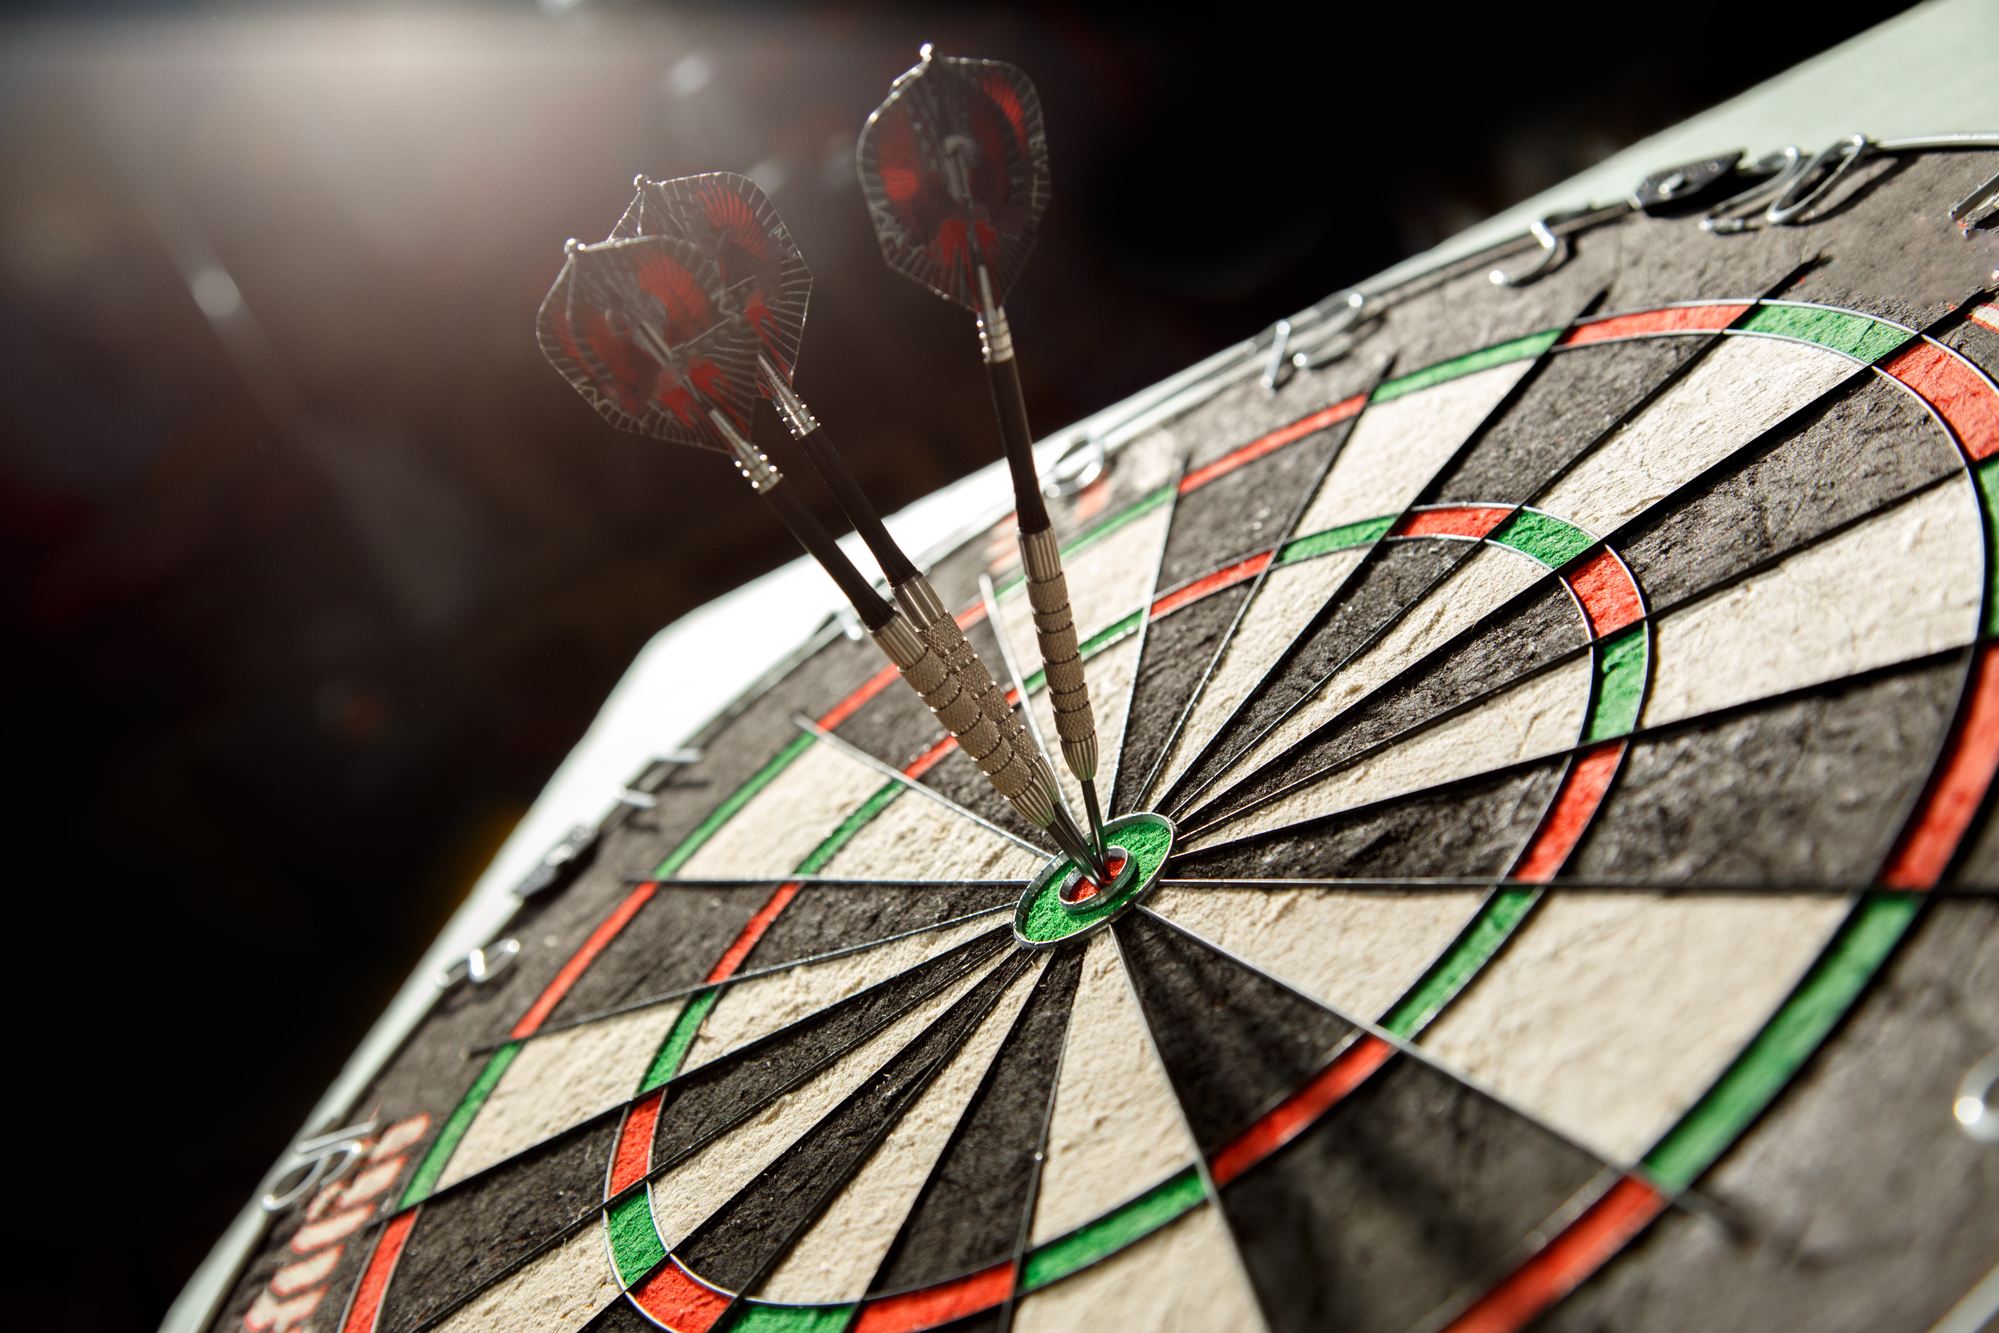 Home Tour Darts Tournament Explained and Where To Watch?